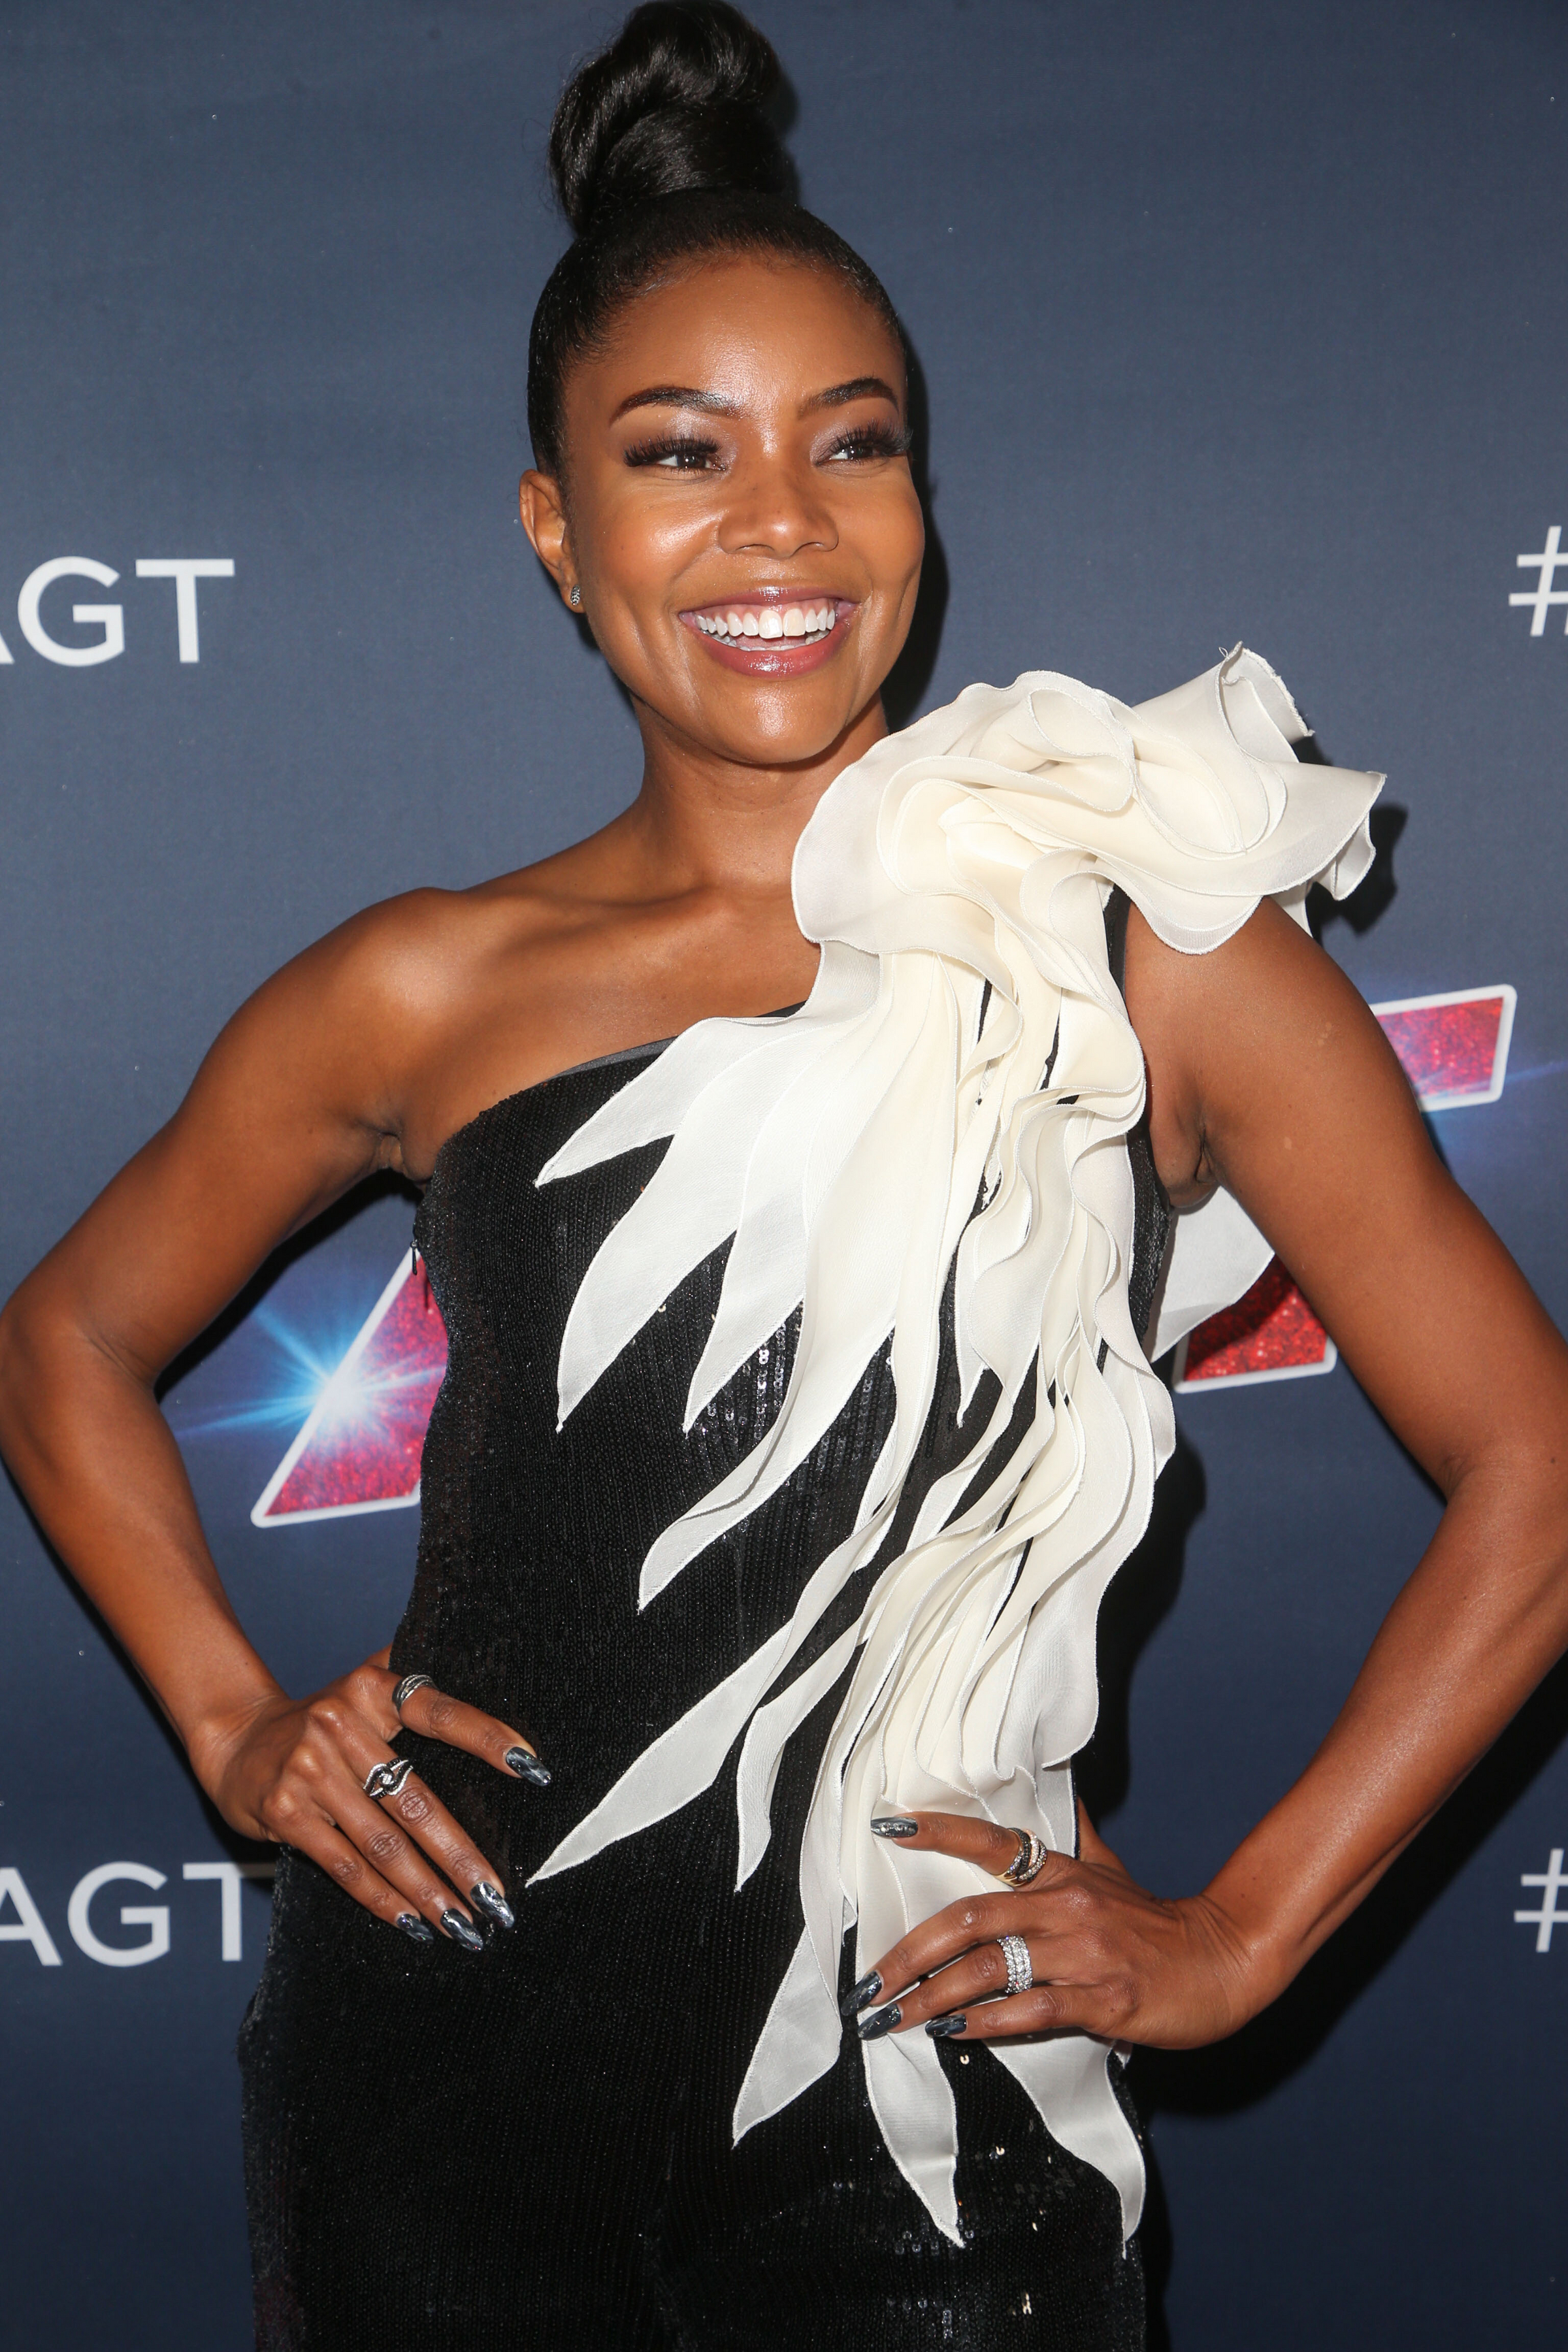 Gabrielle Union Drops Cryptic Response To Criticism About Trans Child [Video]